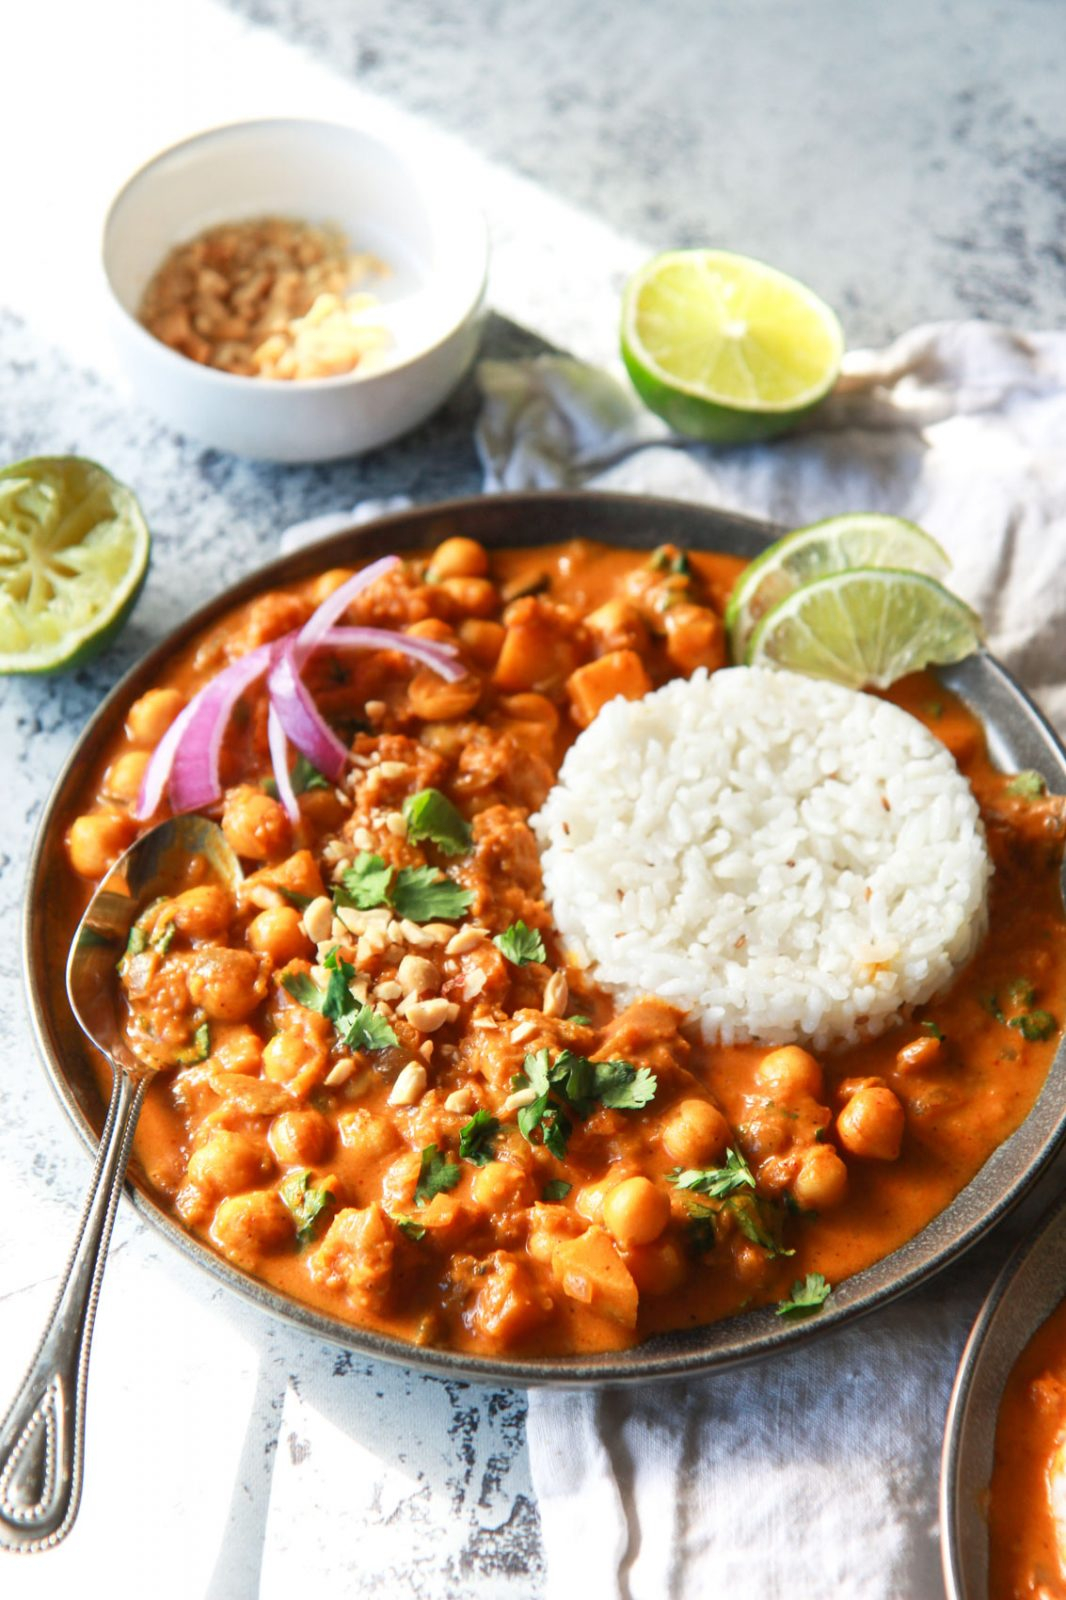 This vegan butternut squash & chickpea panang curry is a sweet, peanut flavored curry, inspired by the classic Thai dish. This vegan Thai peanut curry uses vegan panang curry paste, peanut butter, and coconut milk to create a rich and creamy base. This plant based curry uses chickpea and butternut squash instead of meat. Gluten-free with an oil-free option.